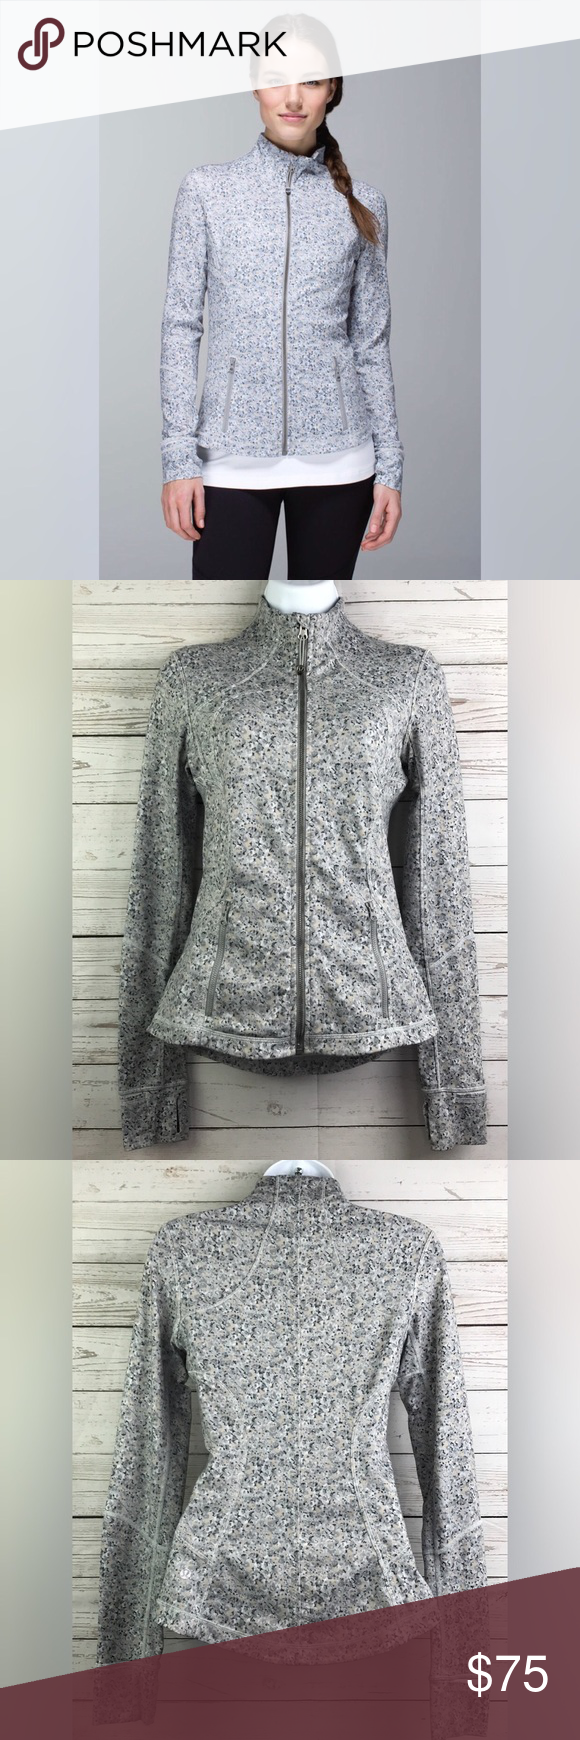 "252efece48 Petite Fleur Silver Spoon. Size: 4 16.5"" underarm to underarm 25"" length  Great condition! No pilling. lululemon athletica Jackets & Coats"